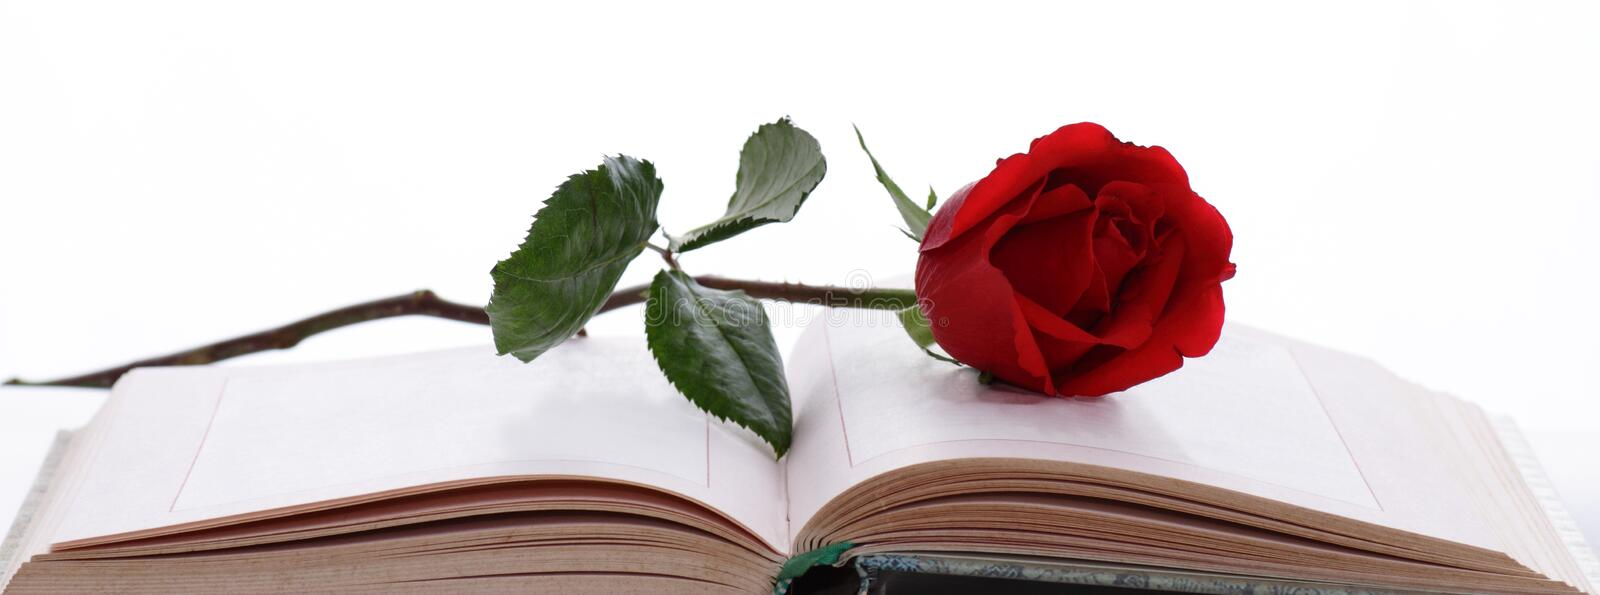 Rose and Book. A stalk of red rose on an open book against white background royalty free stock photos